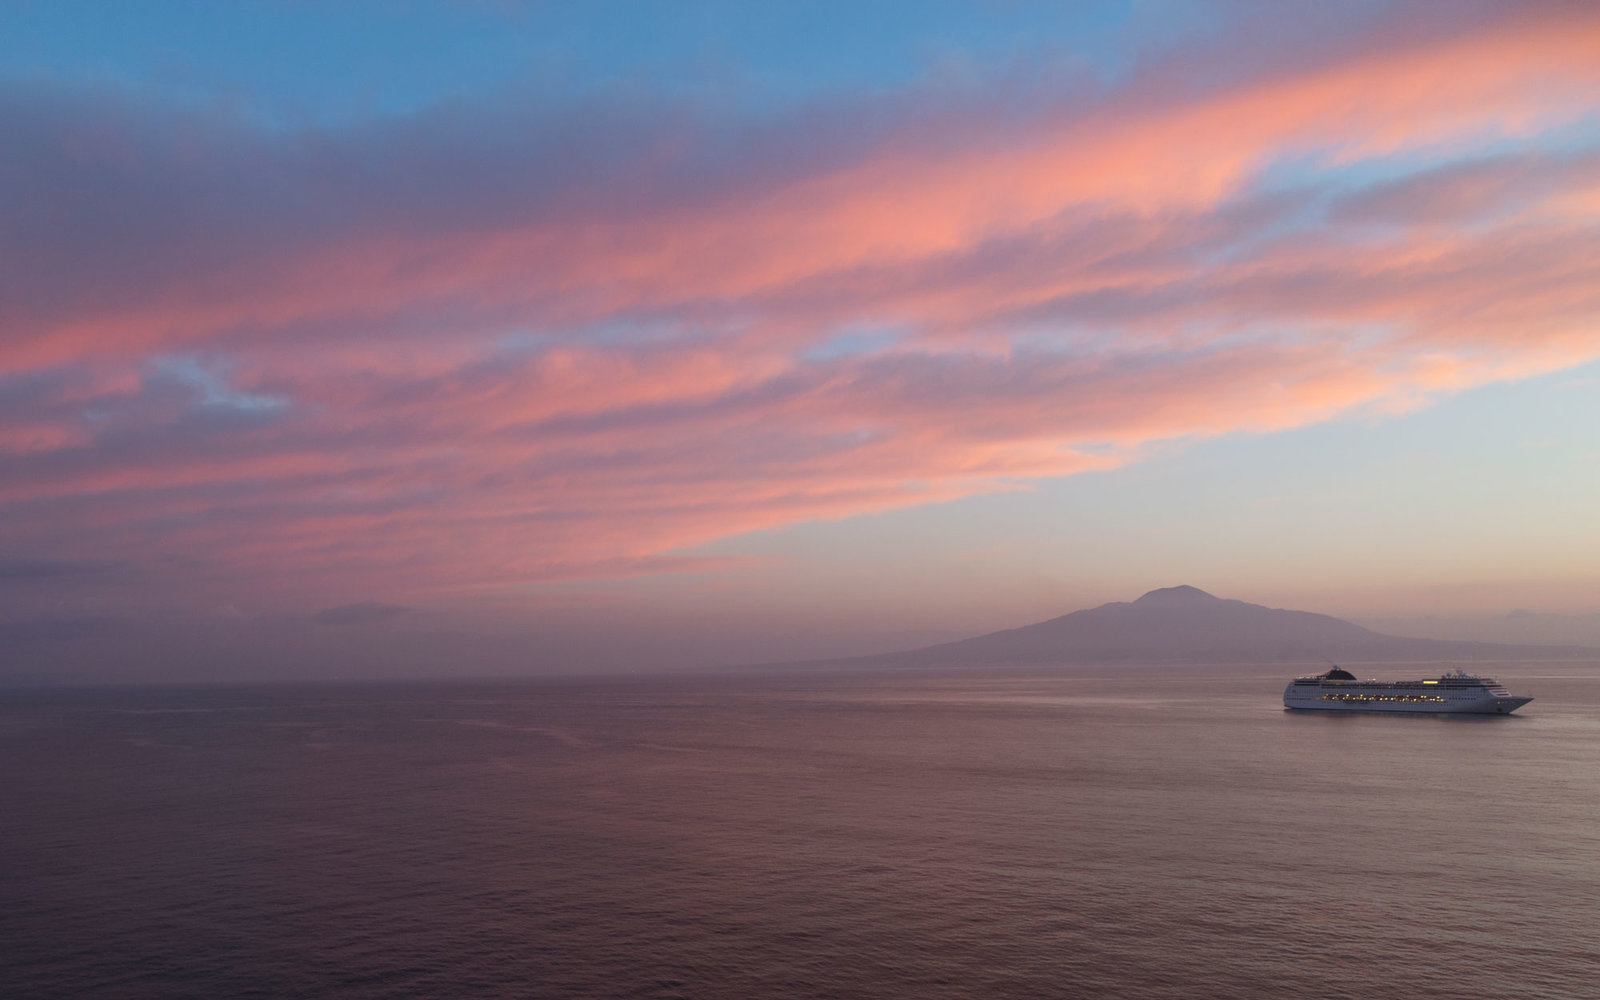 cruise ship near Mount Vesuvius